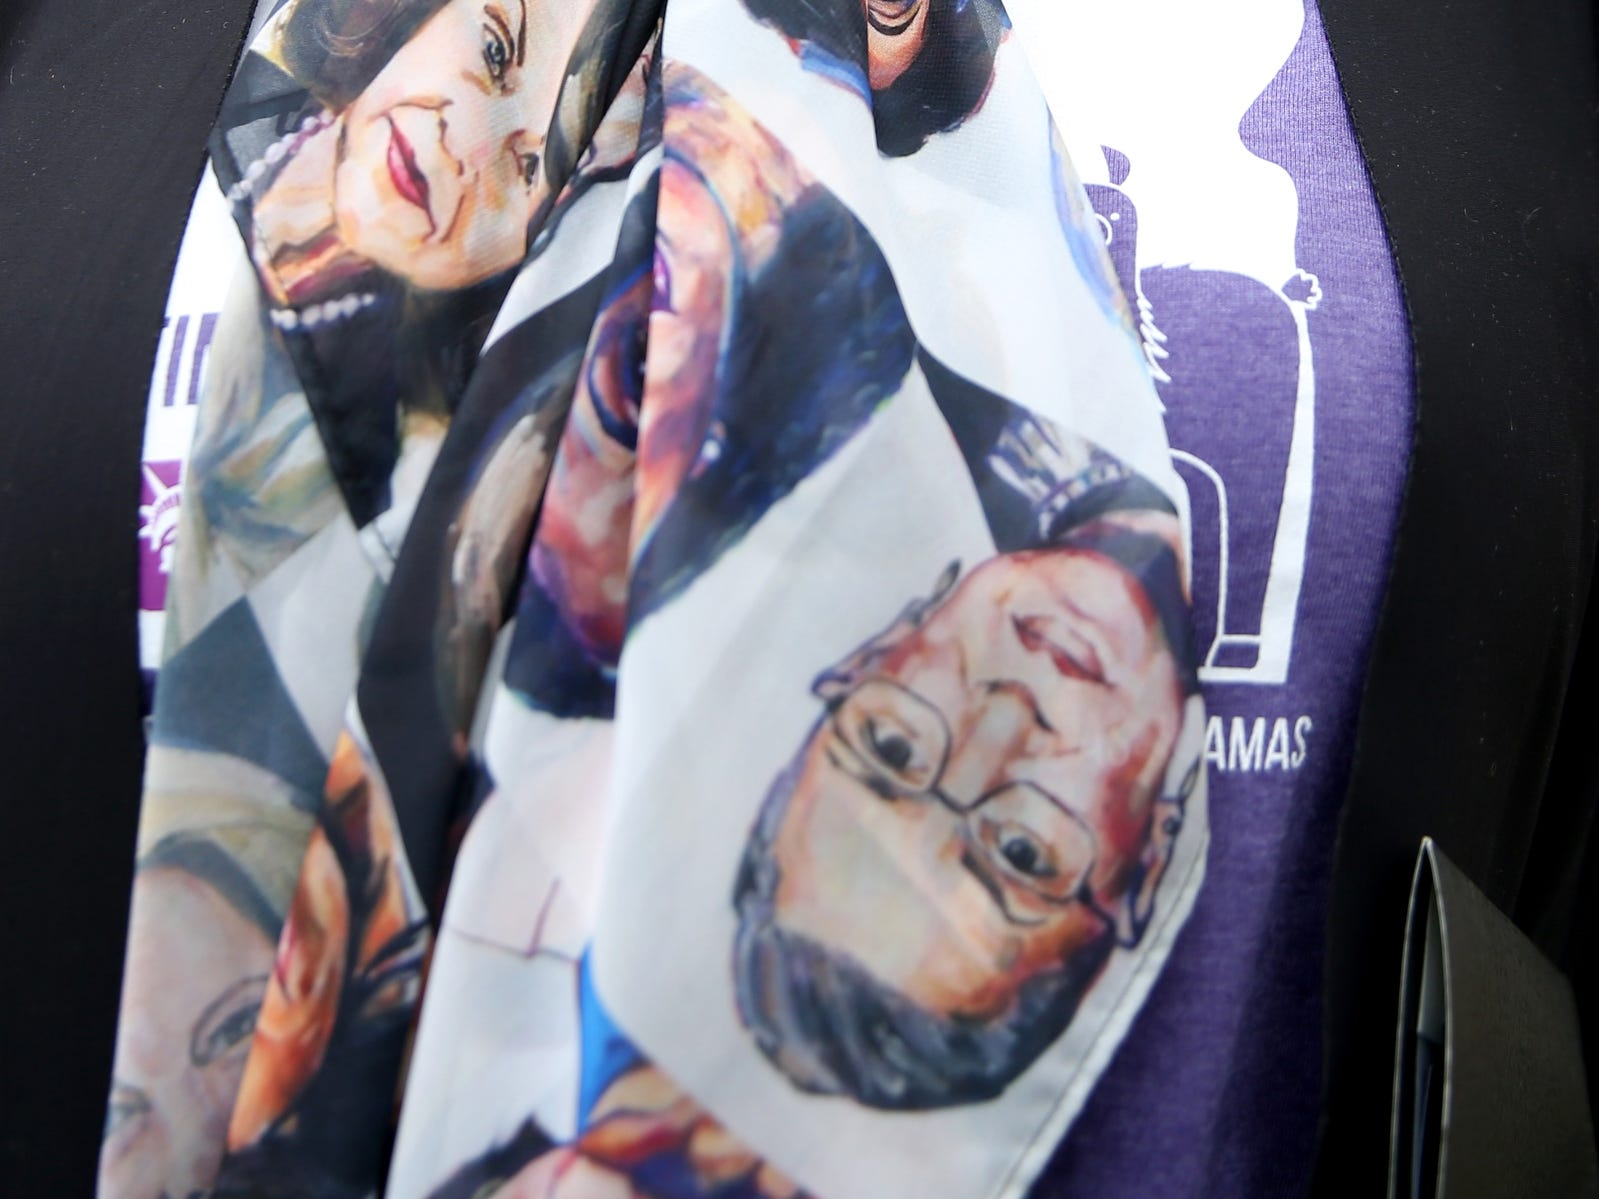 Dacia Grayber, of Tigard, wears a scarf with the faces of prominent women during a demonstration for International Women's Day at the Oregon State Capitol in Salem on Friday, March 8, 2019. Many during the rally voiced their support for a state-run family and medical leave insurance program in Oregon.